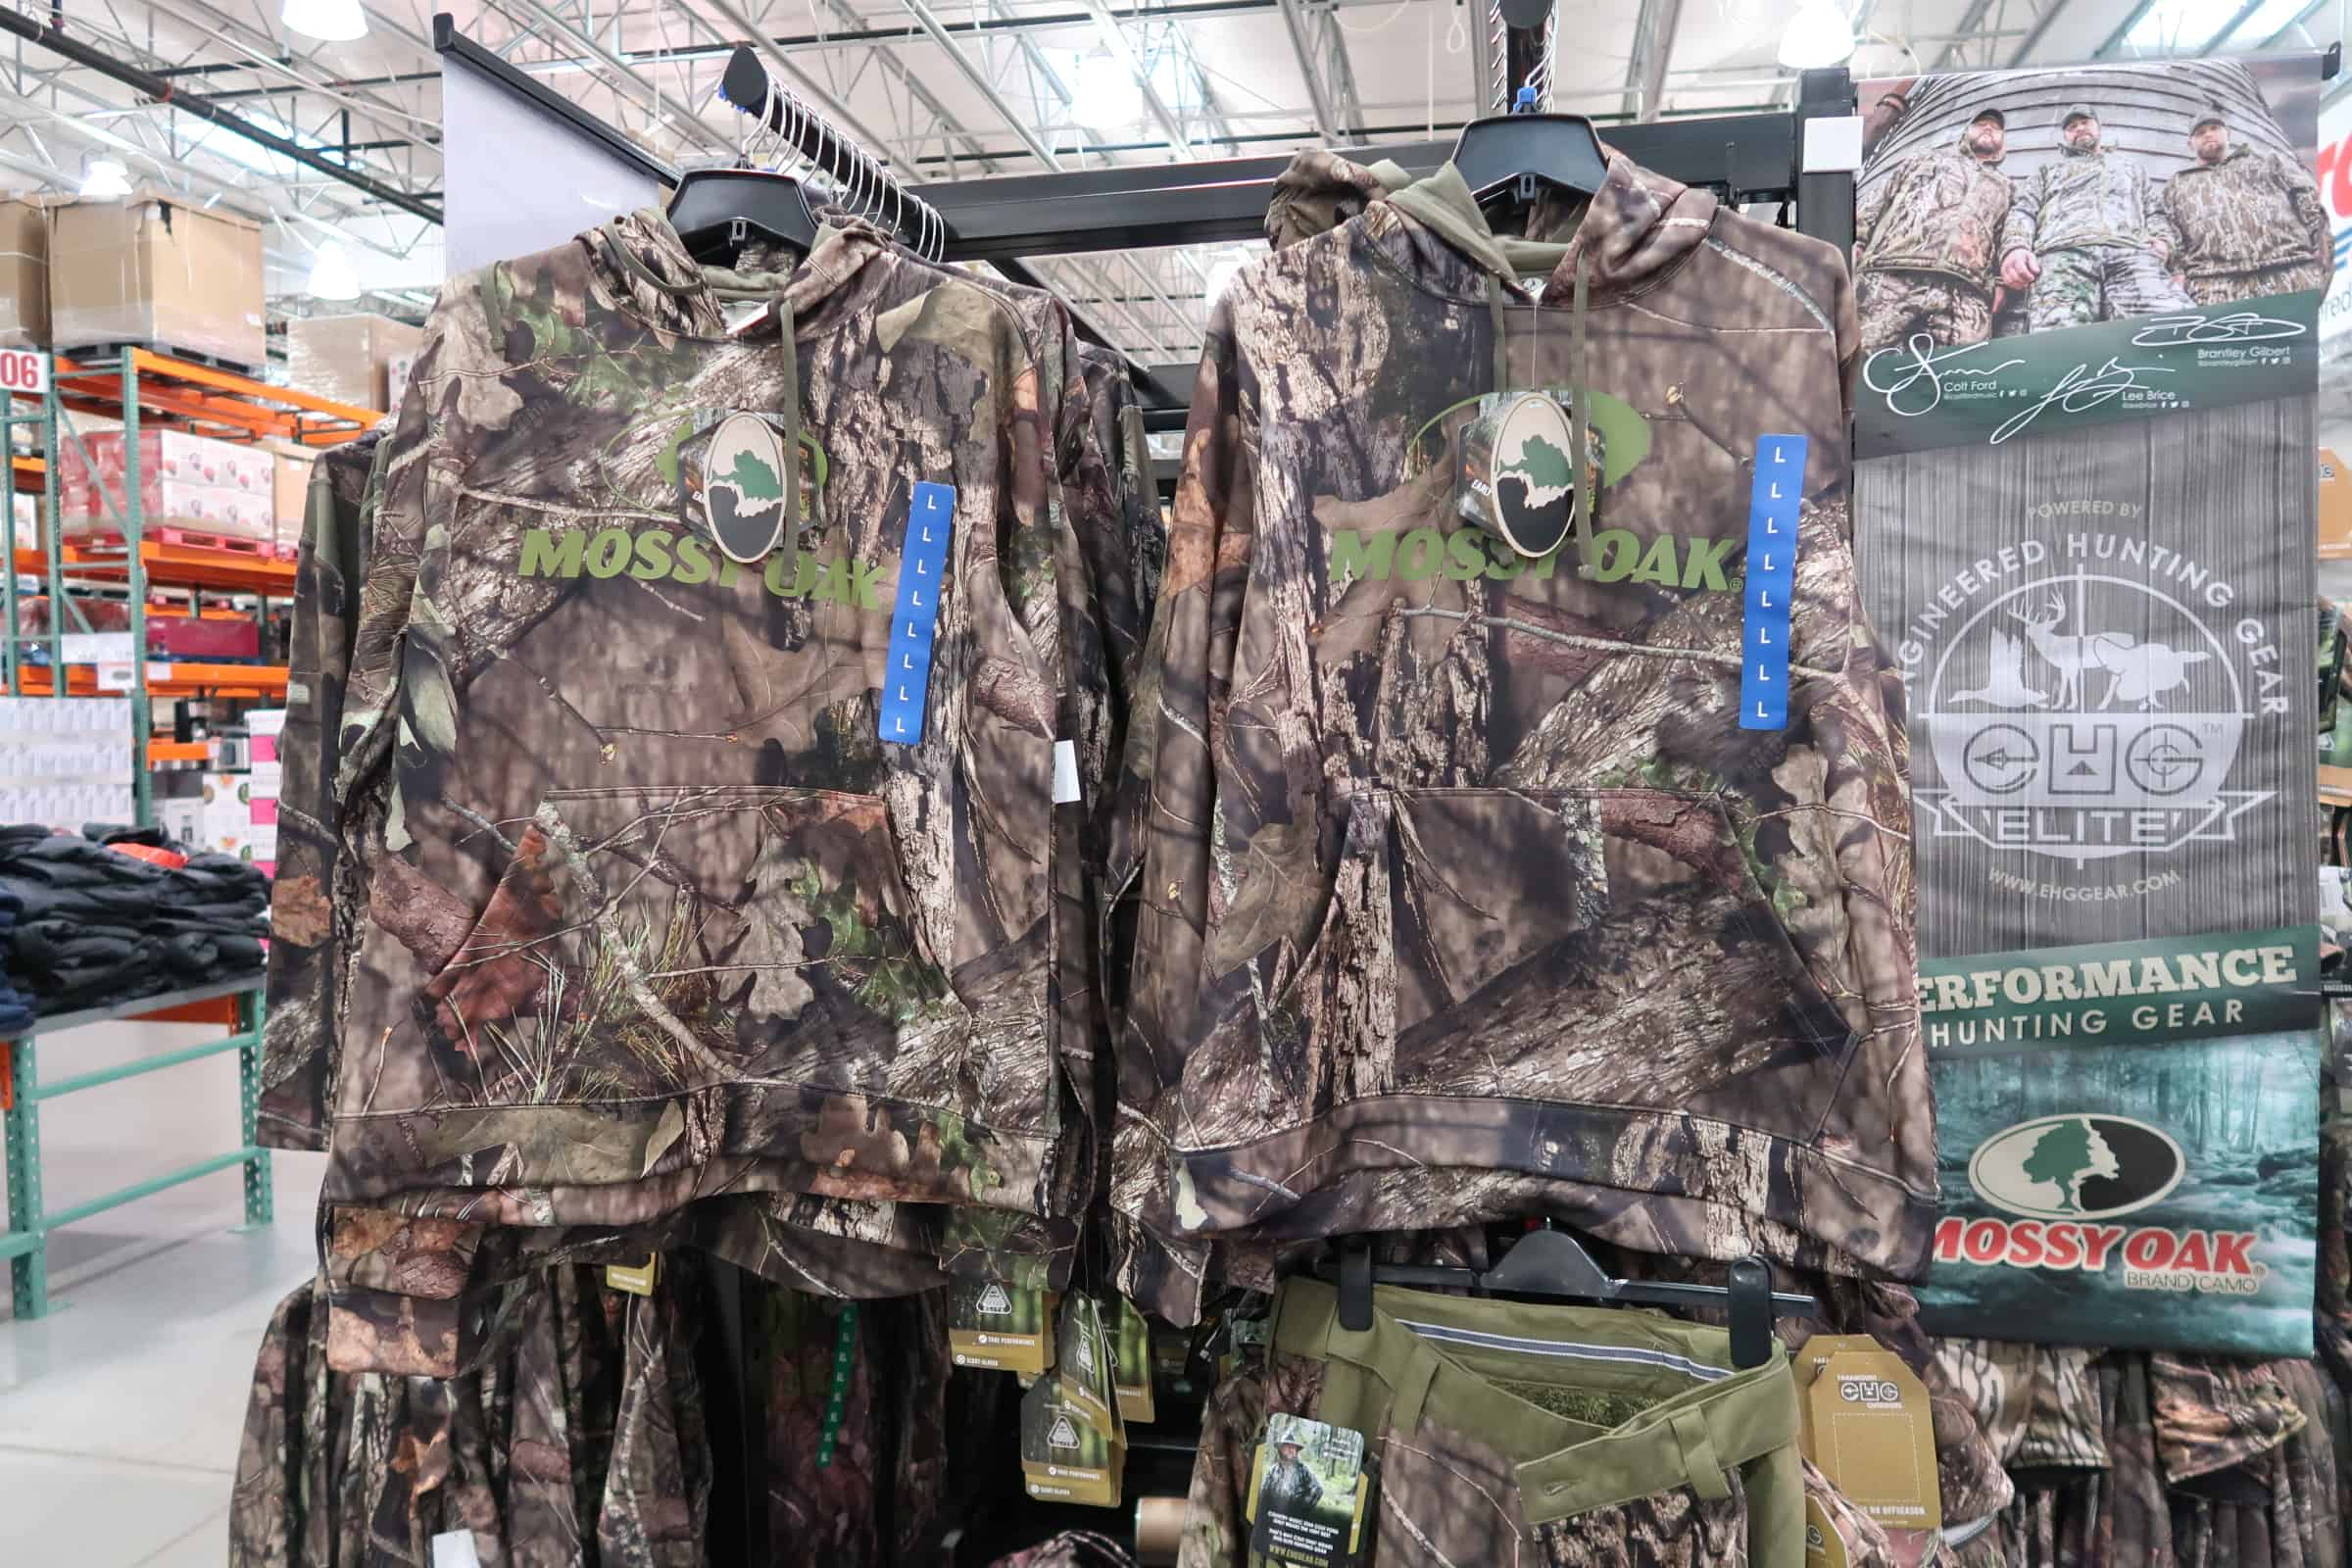 Hunting Gear & More at Costco